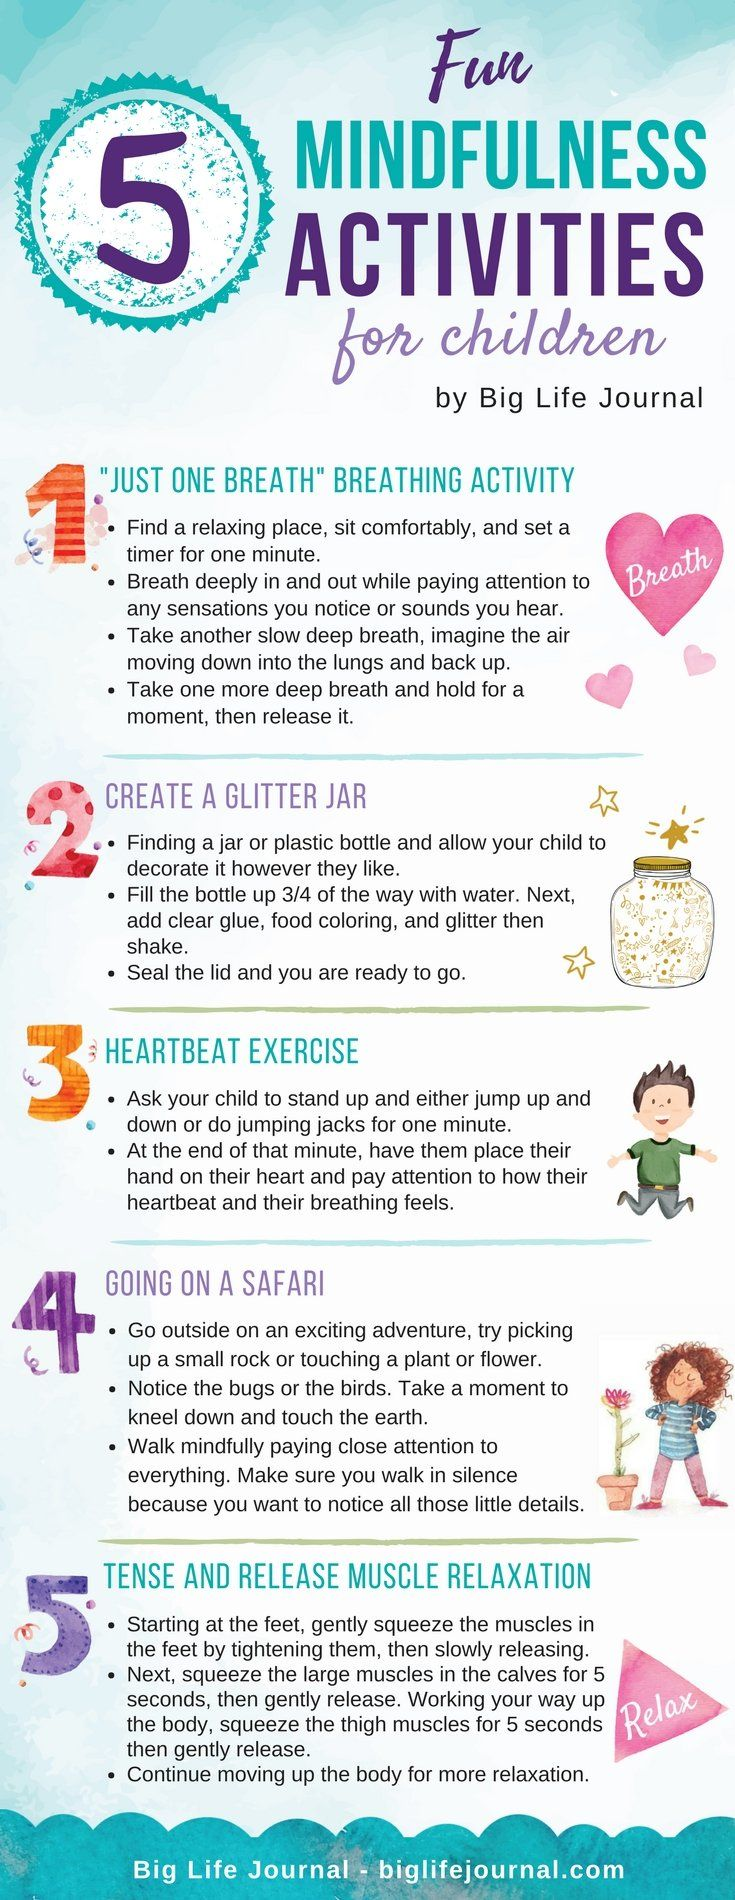 5 Fun Mindfulness Activities for Children – Big Life Journal